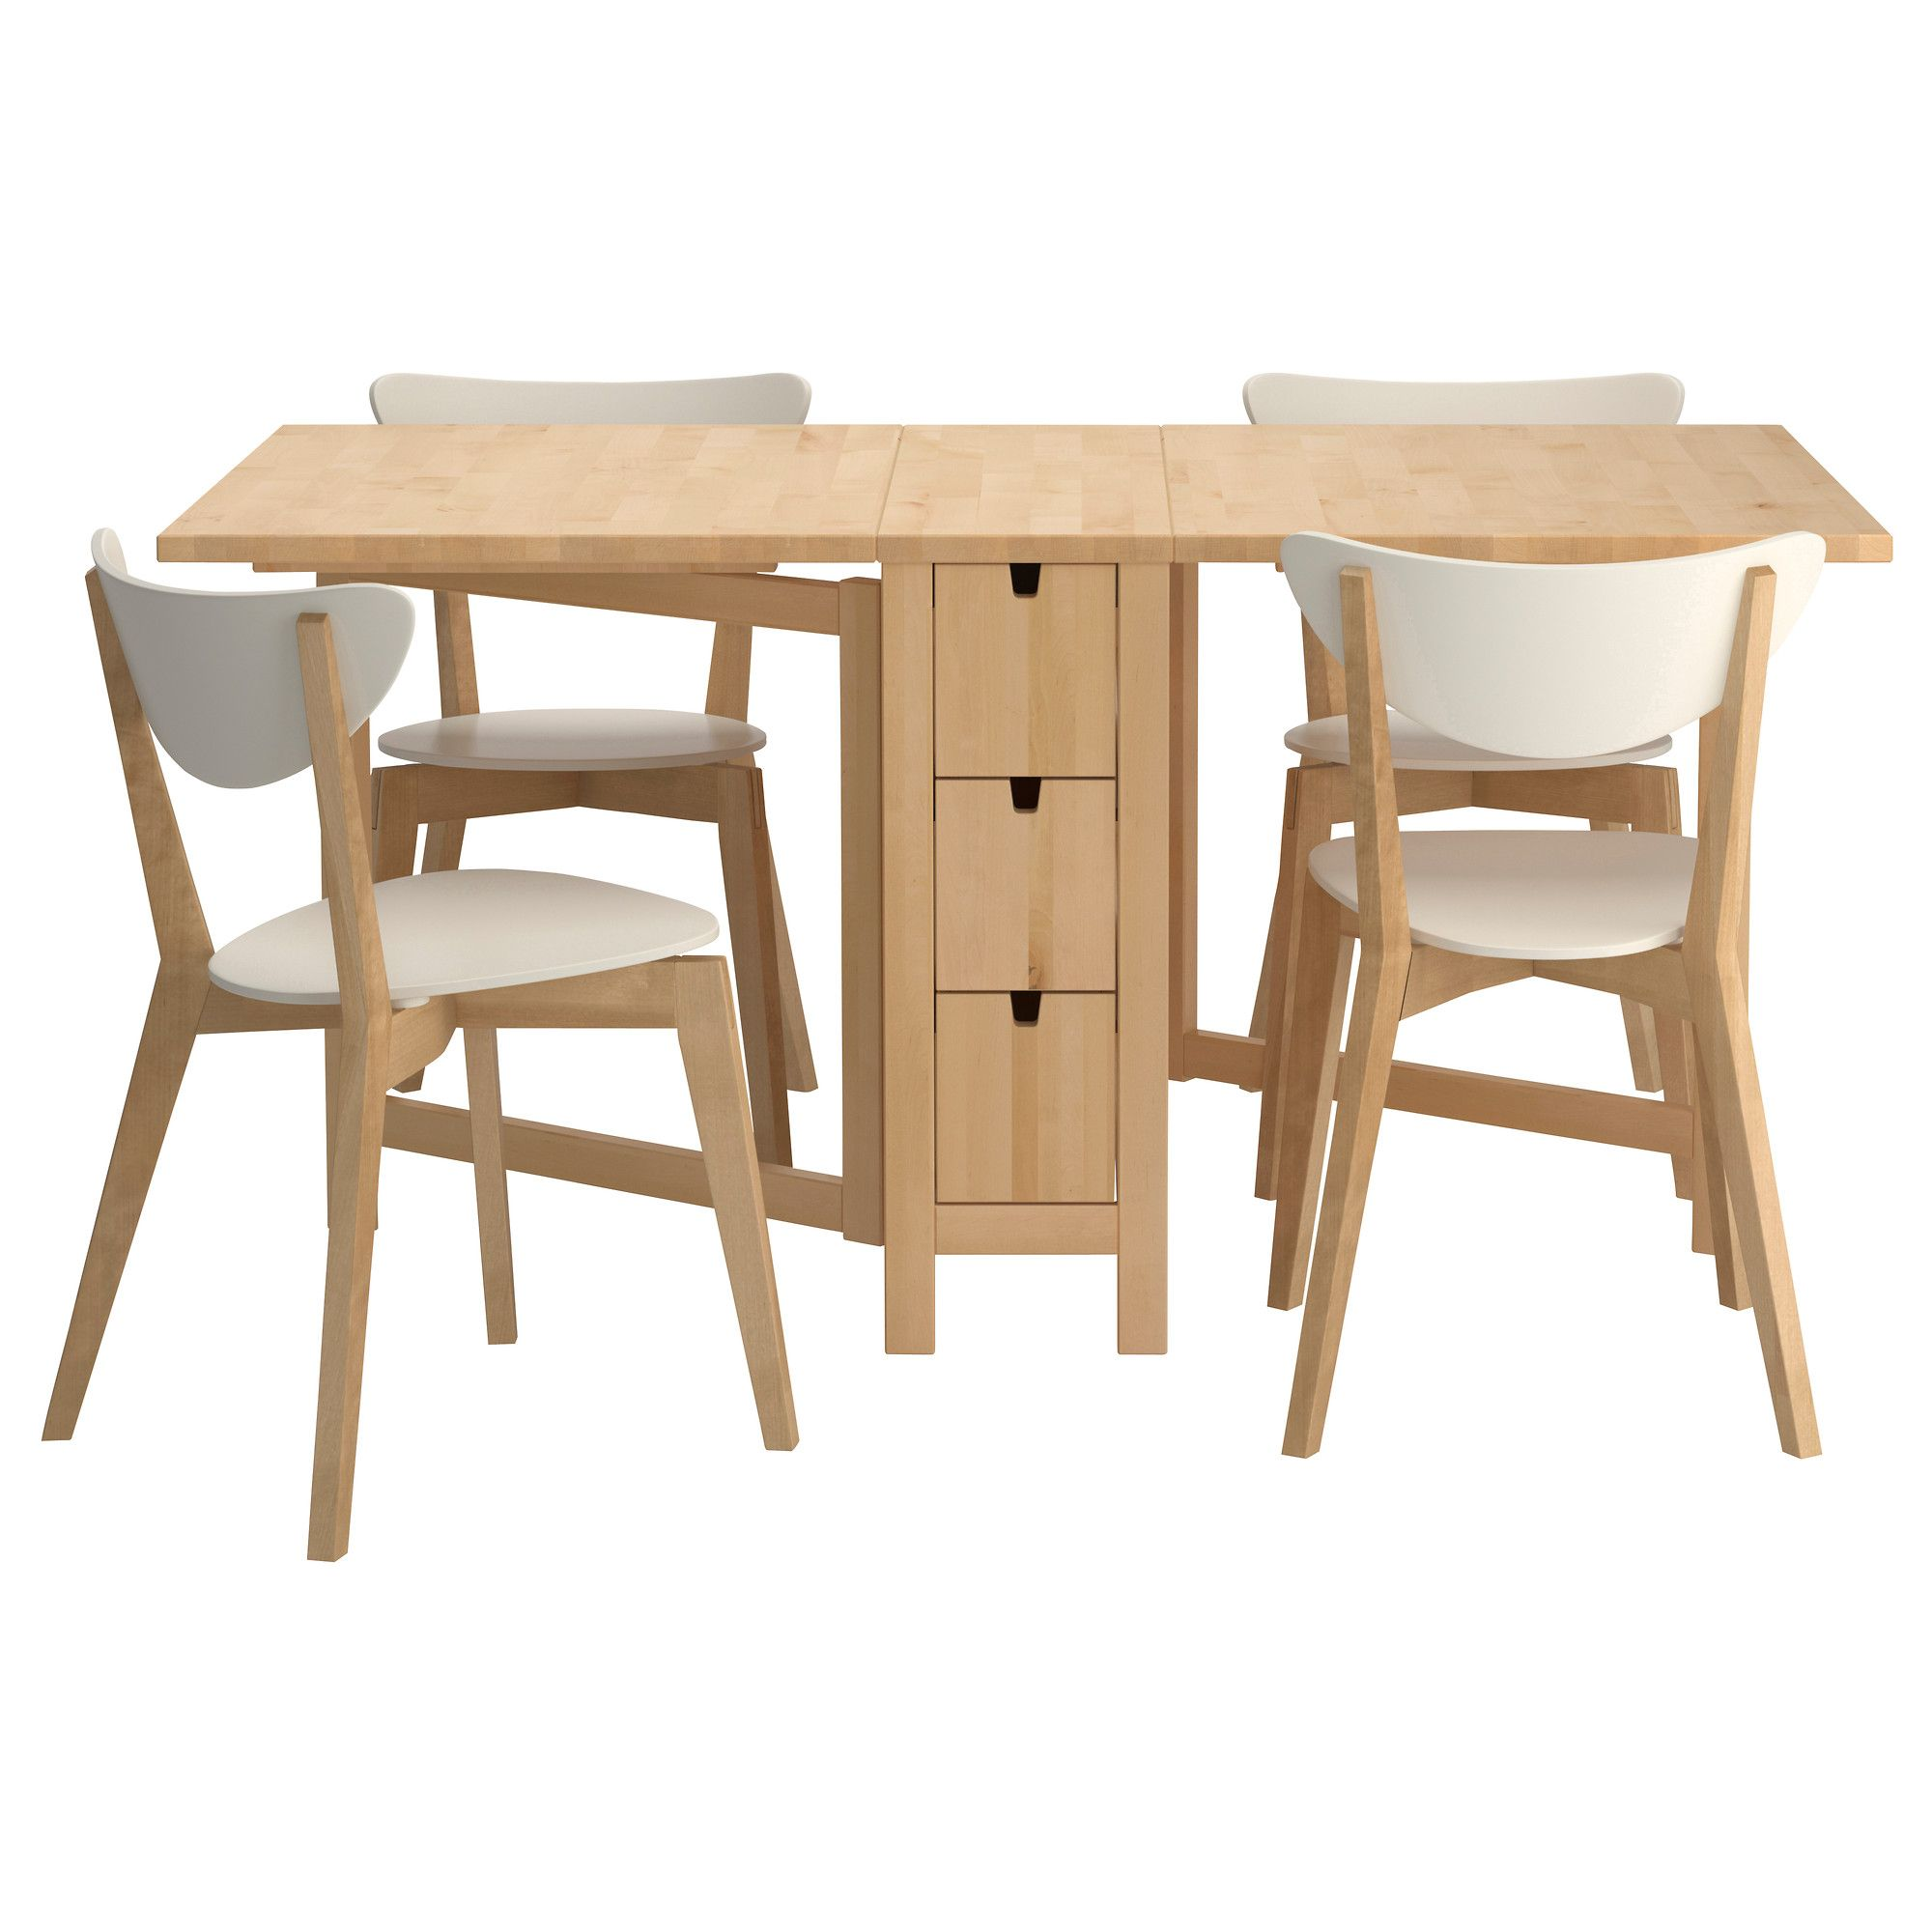 NORDEN/NORDMYRA Table and 4 chairs IKEA for the love